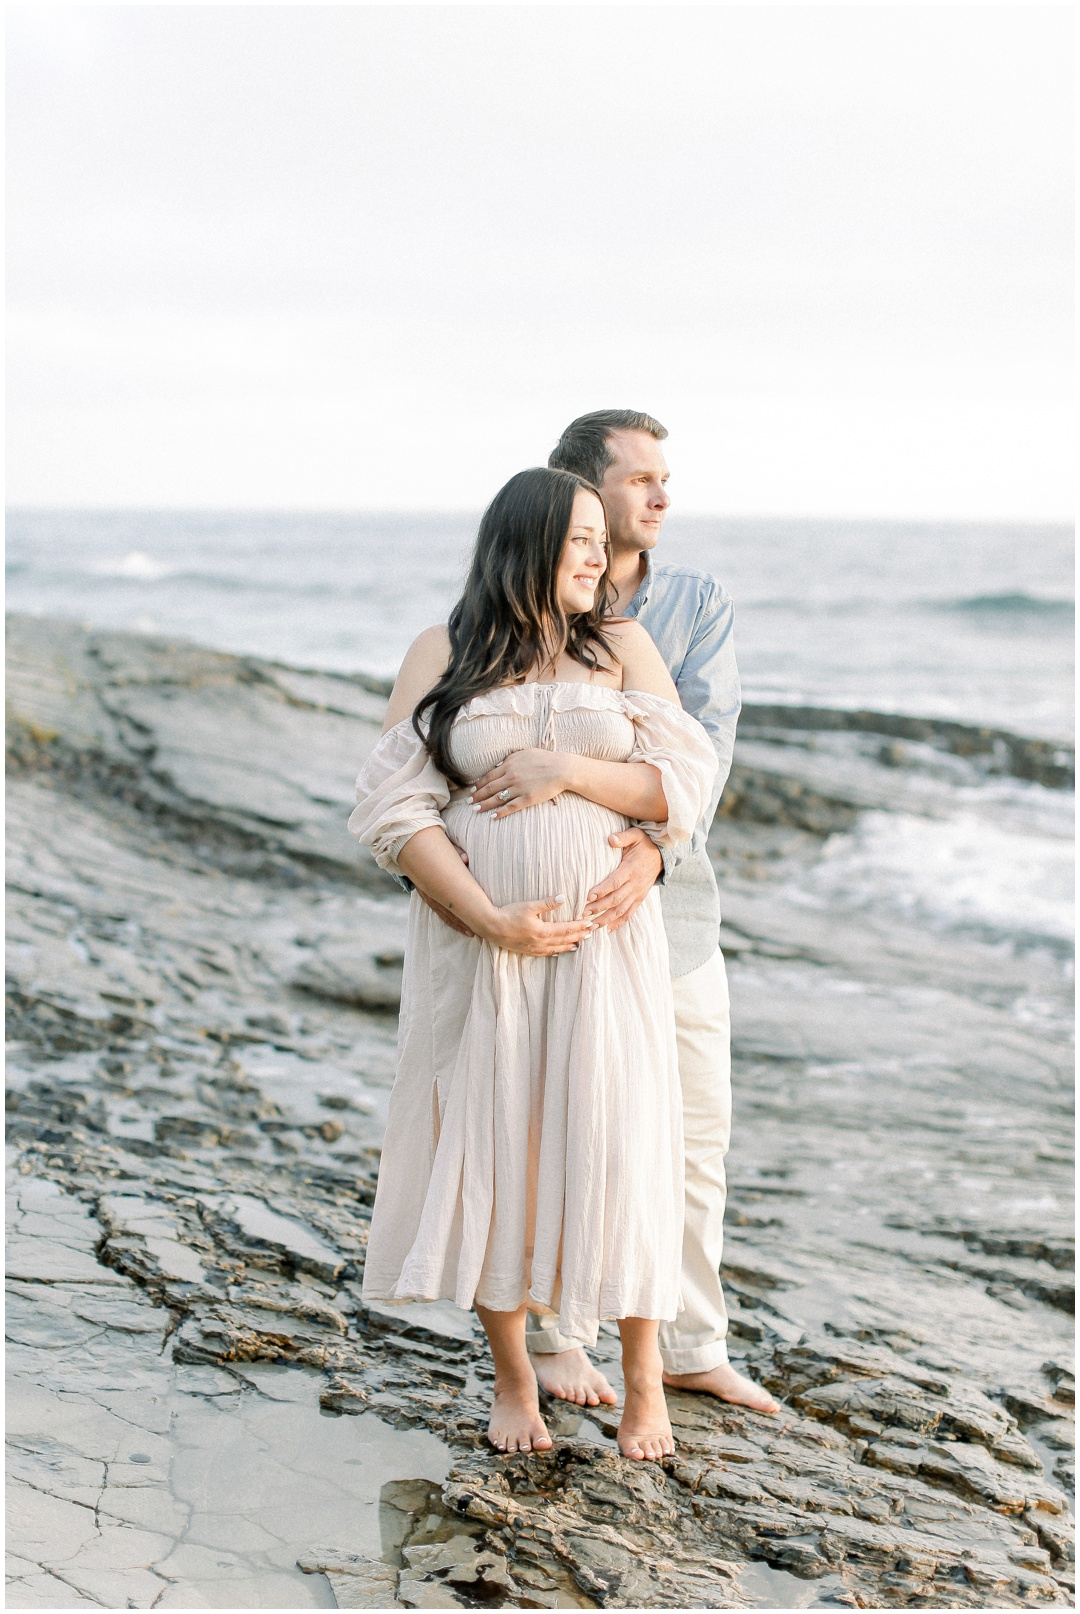 Newport_Beach_Newborn_Light_Airy_Natural_Photographer_Newport_Beach_Photographer_Orange_County_Maternity_Photographer_Cori_Kleckner_Photography_Newport_Beach_Photographer_Candice_Byle_Candice_Fillippini_Kevin_Fillippini__4168.jpg